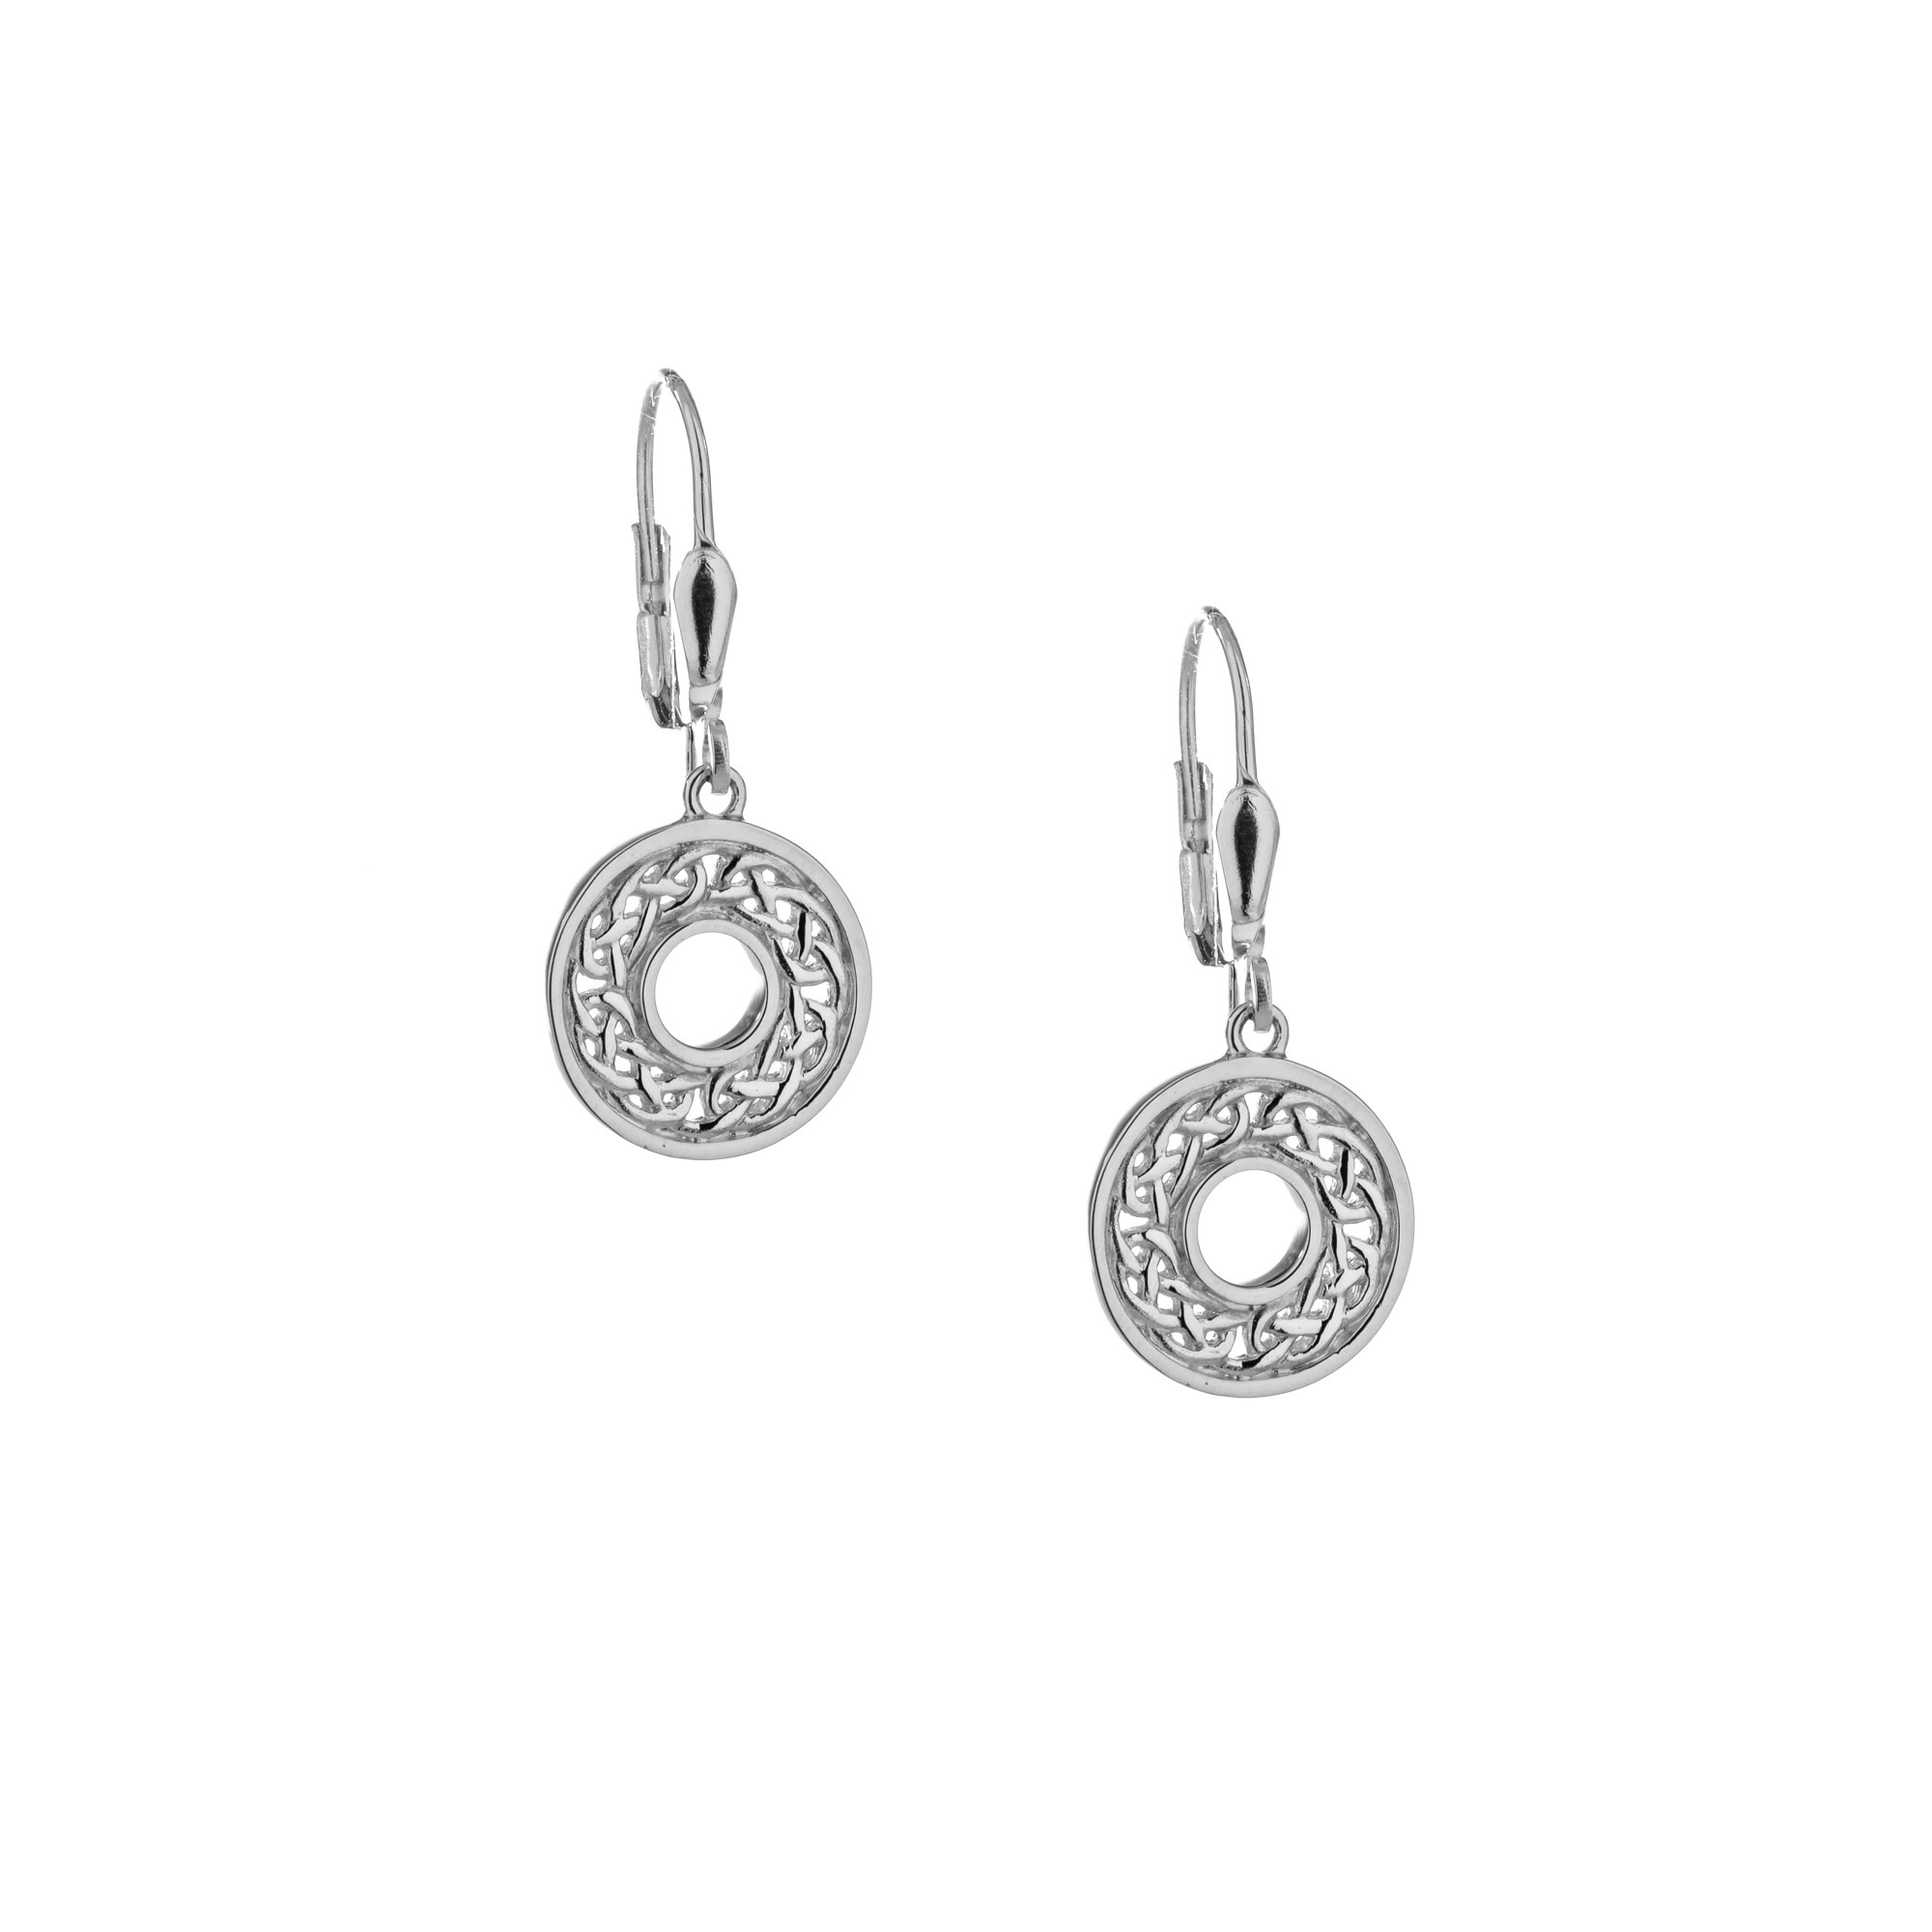 Keith Jack Earring: Sterling Silver Eternity Knot